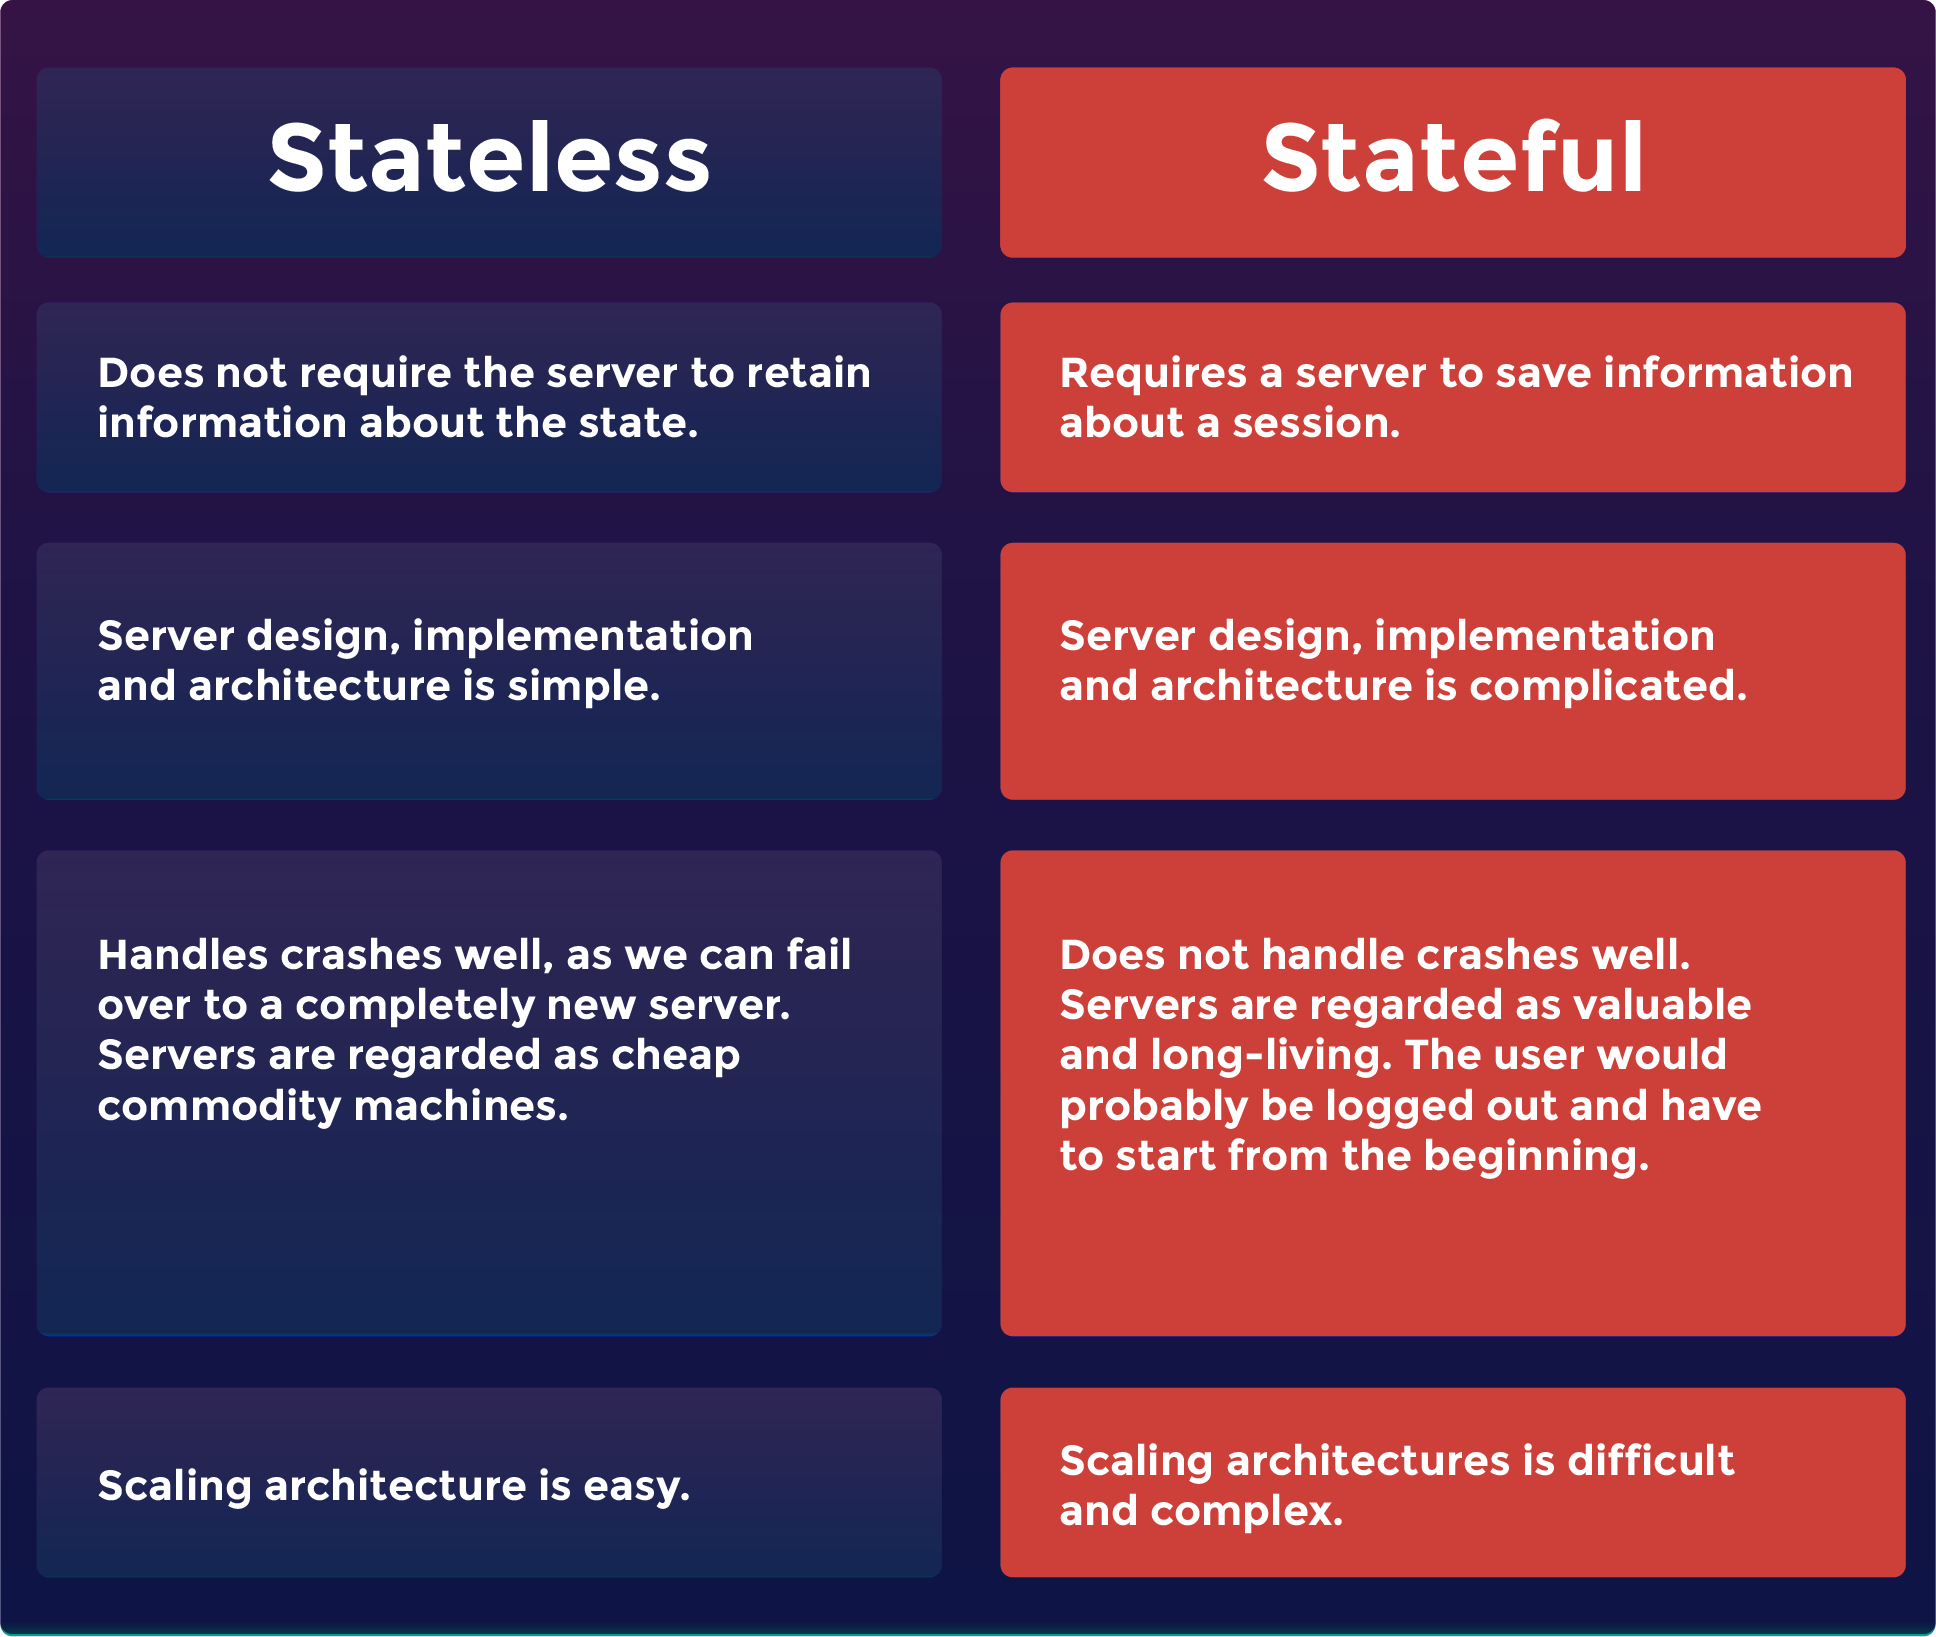 Table comparing stateful and stateless architecture